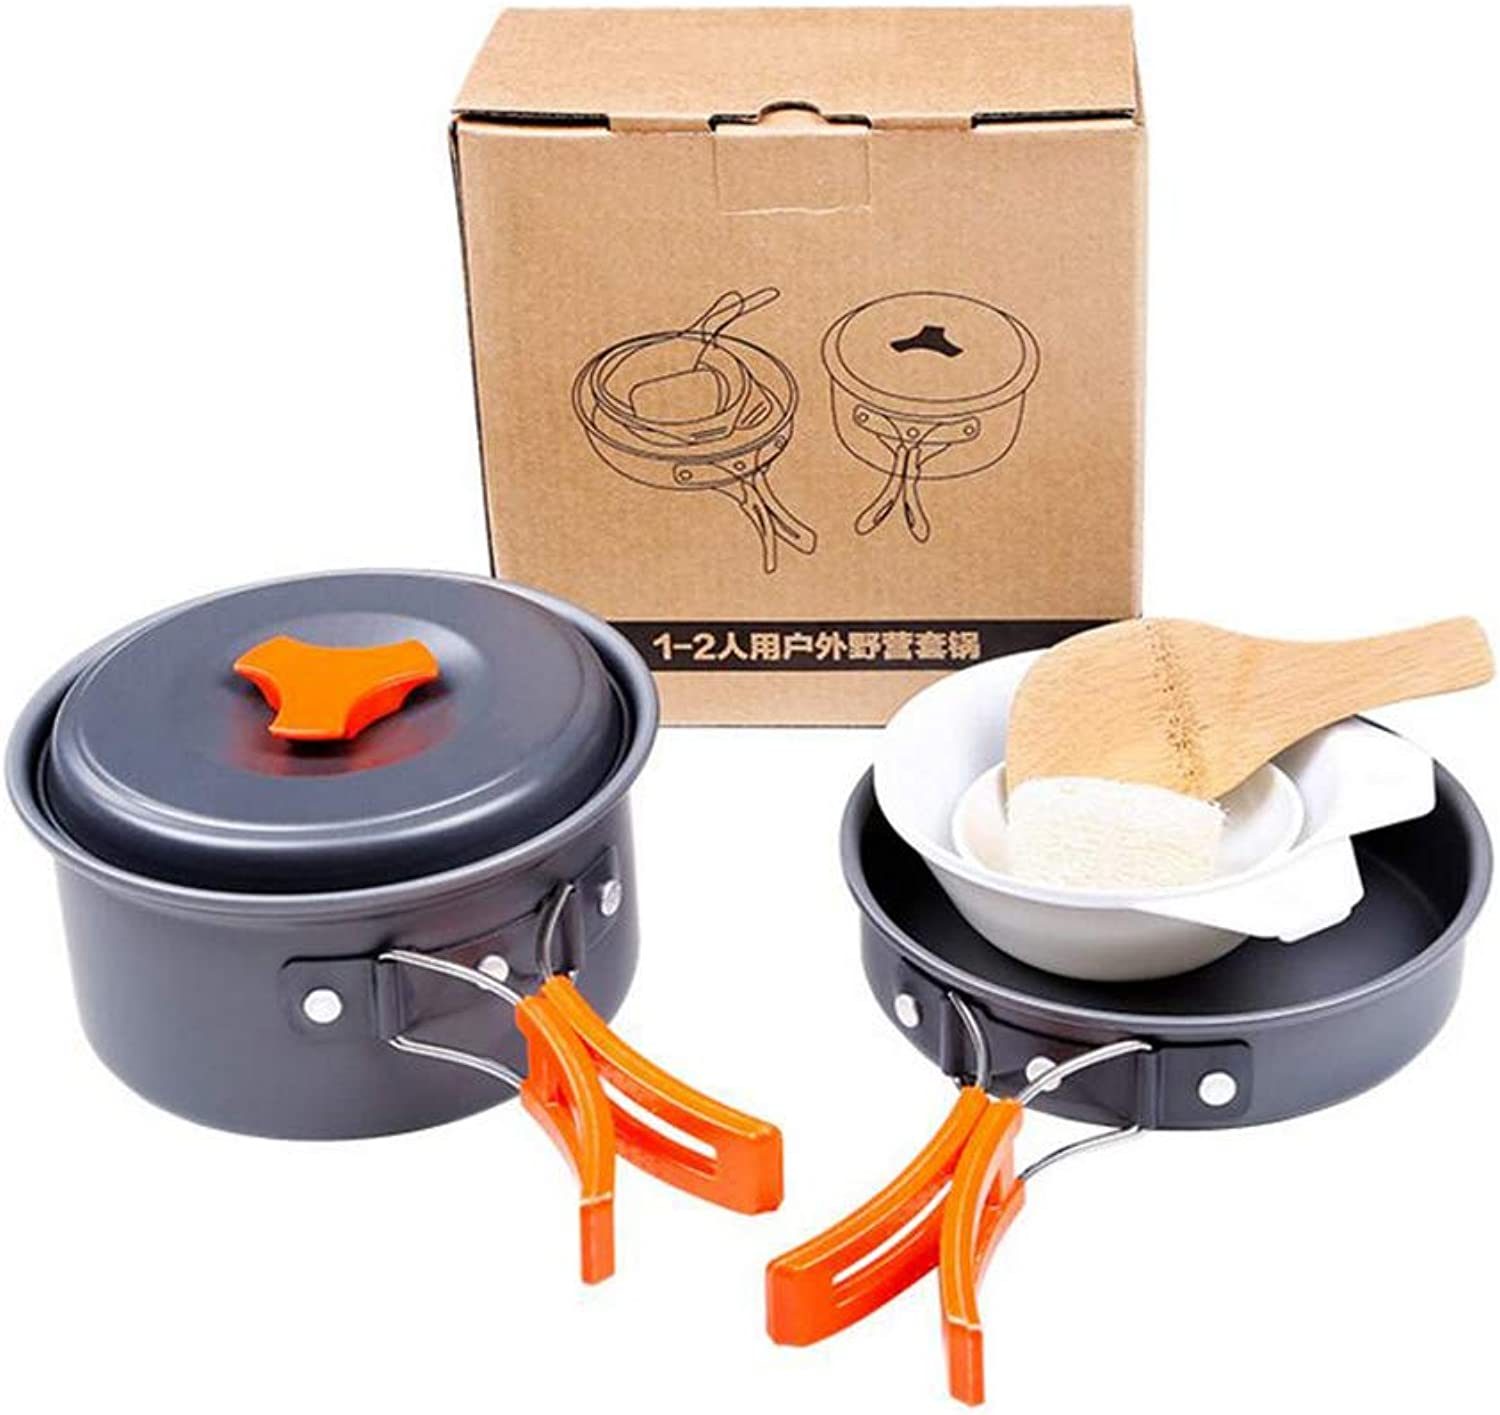 Outdoor Camping Cookware Set Tableware Cooking Travel Cutlery Utensils Pot Pan Hiking Picnic Tools Handle for 1 to 2 People Traveling